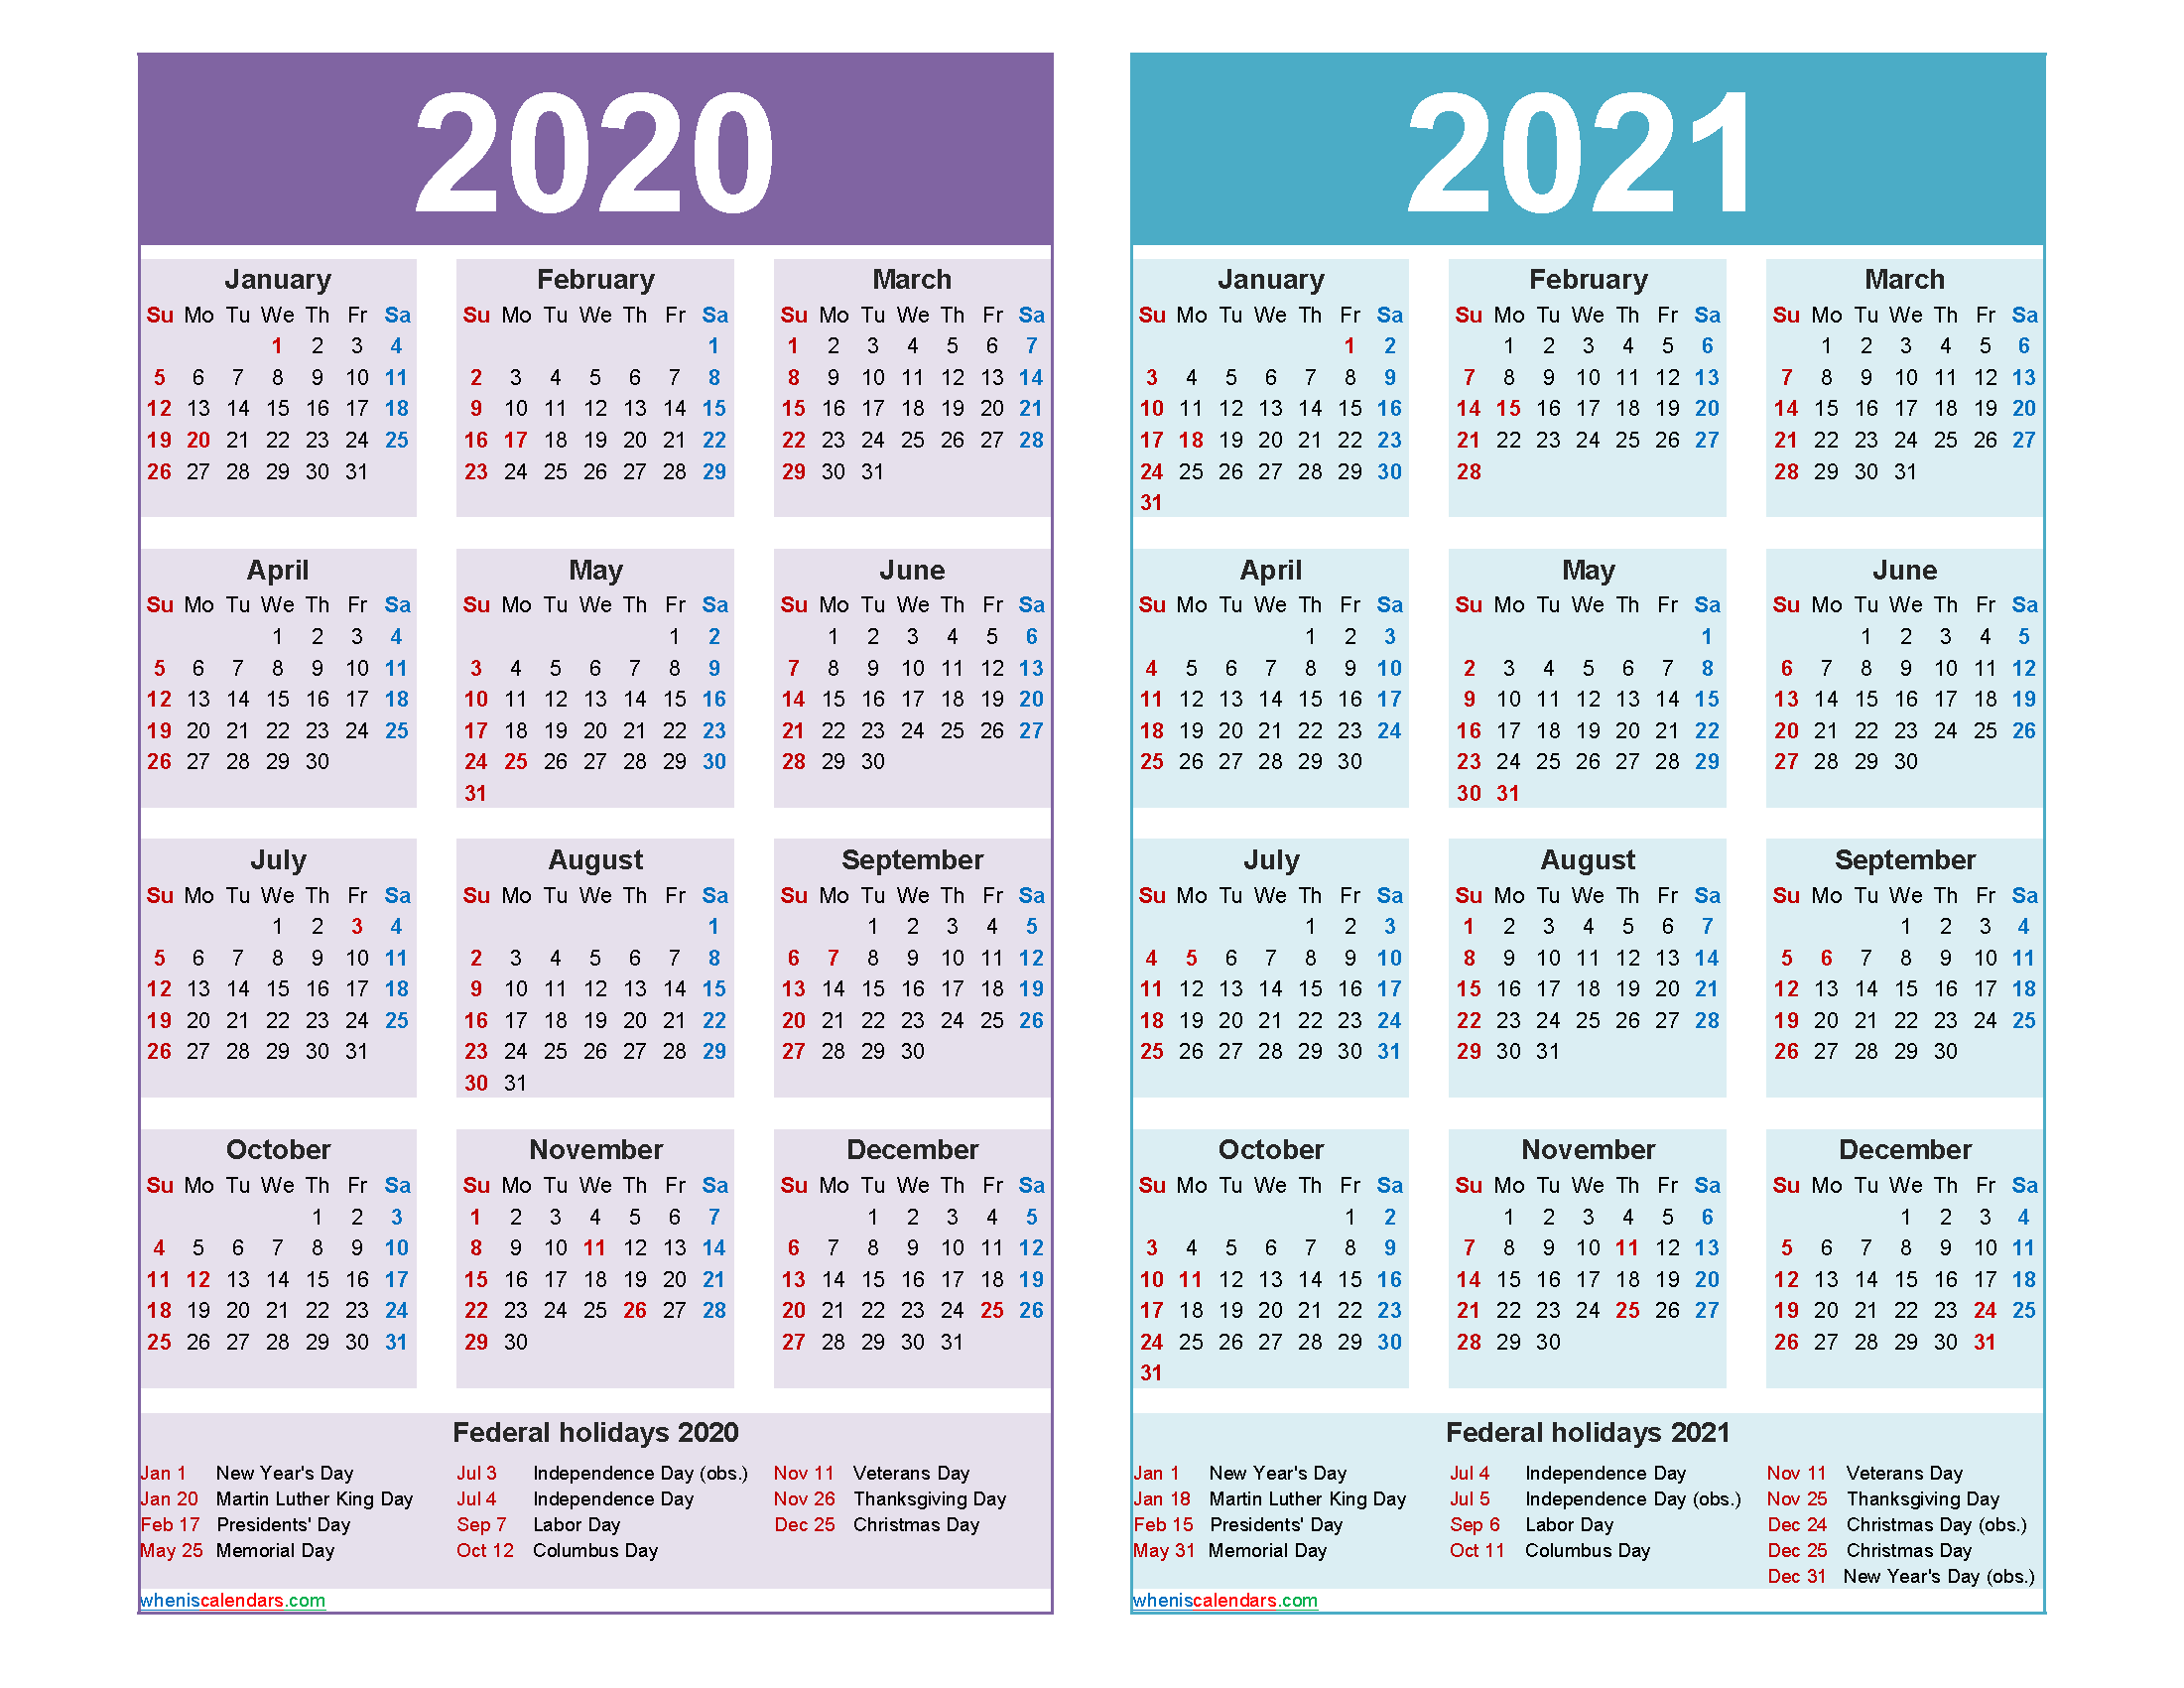 Free 2020 and 2021 Calendar Printable Word, PDF